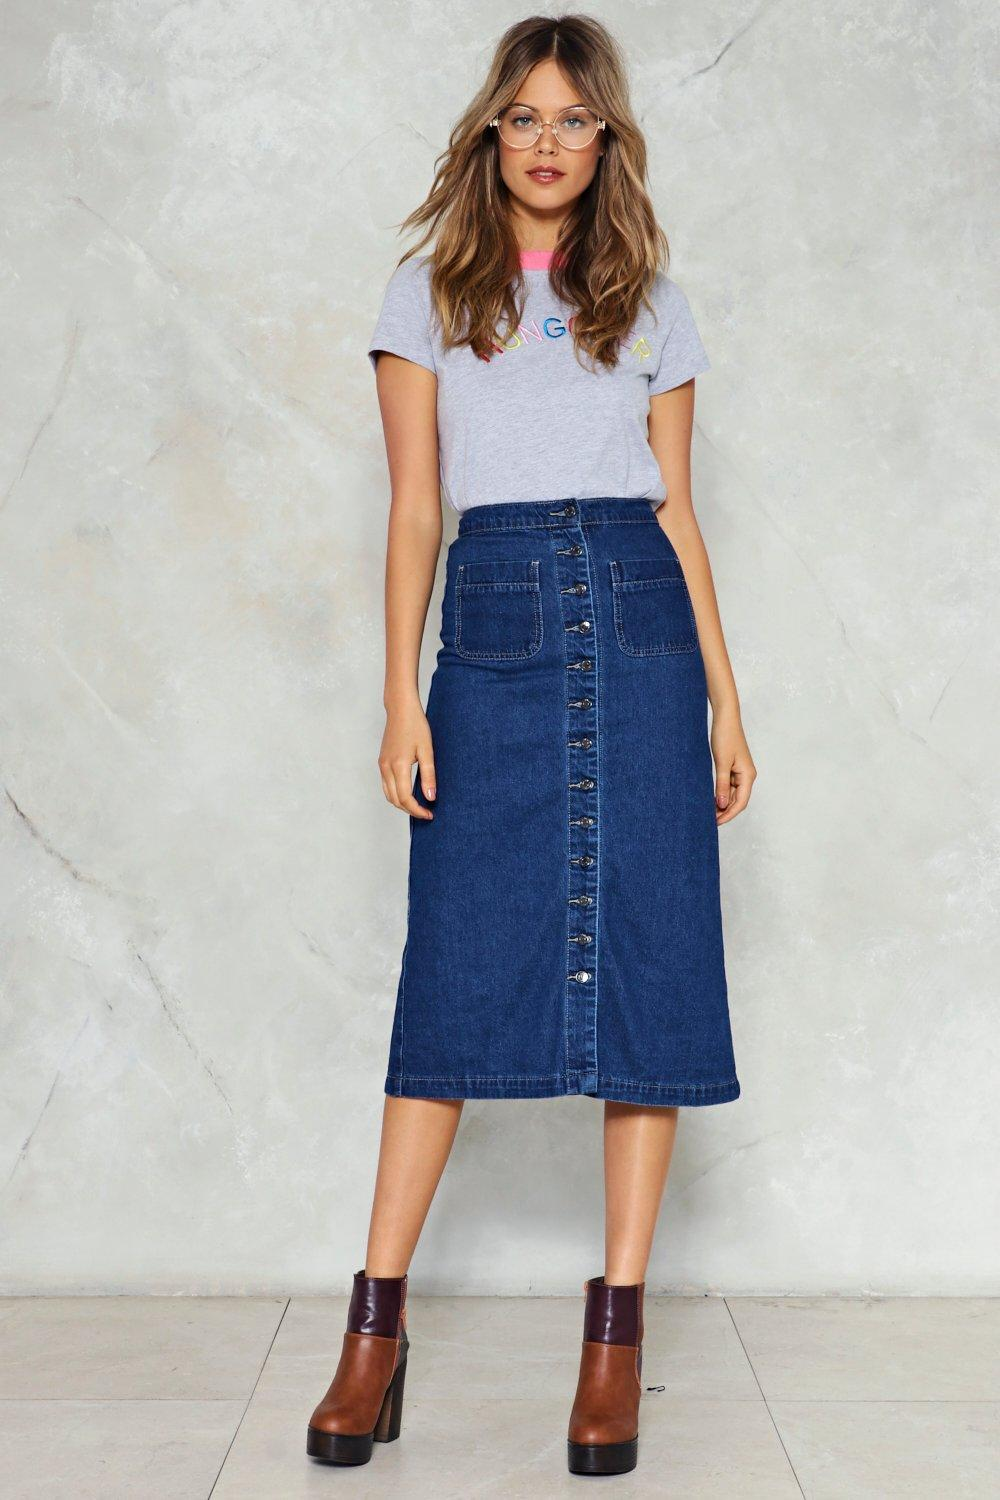 Find great deals on eBay for Blue MIDI Skirt in Skirts, Clothing, Shoes and Accessories for Women. Shop with confidence.